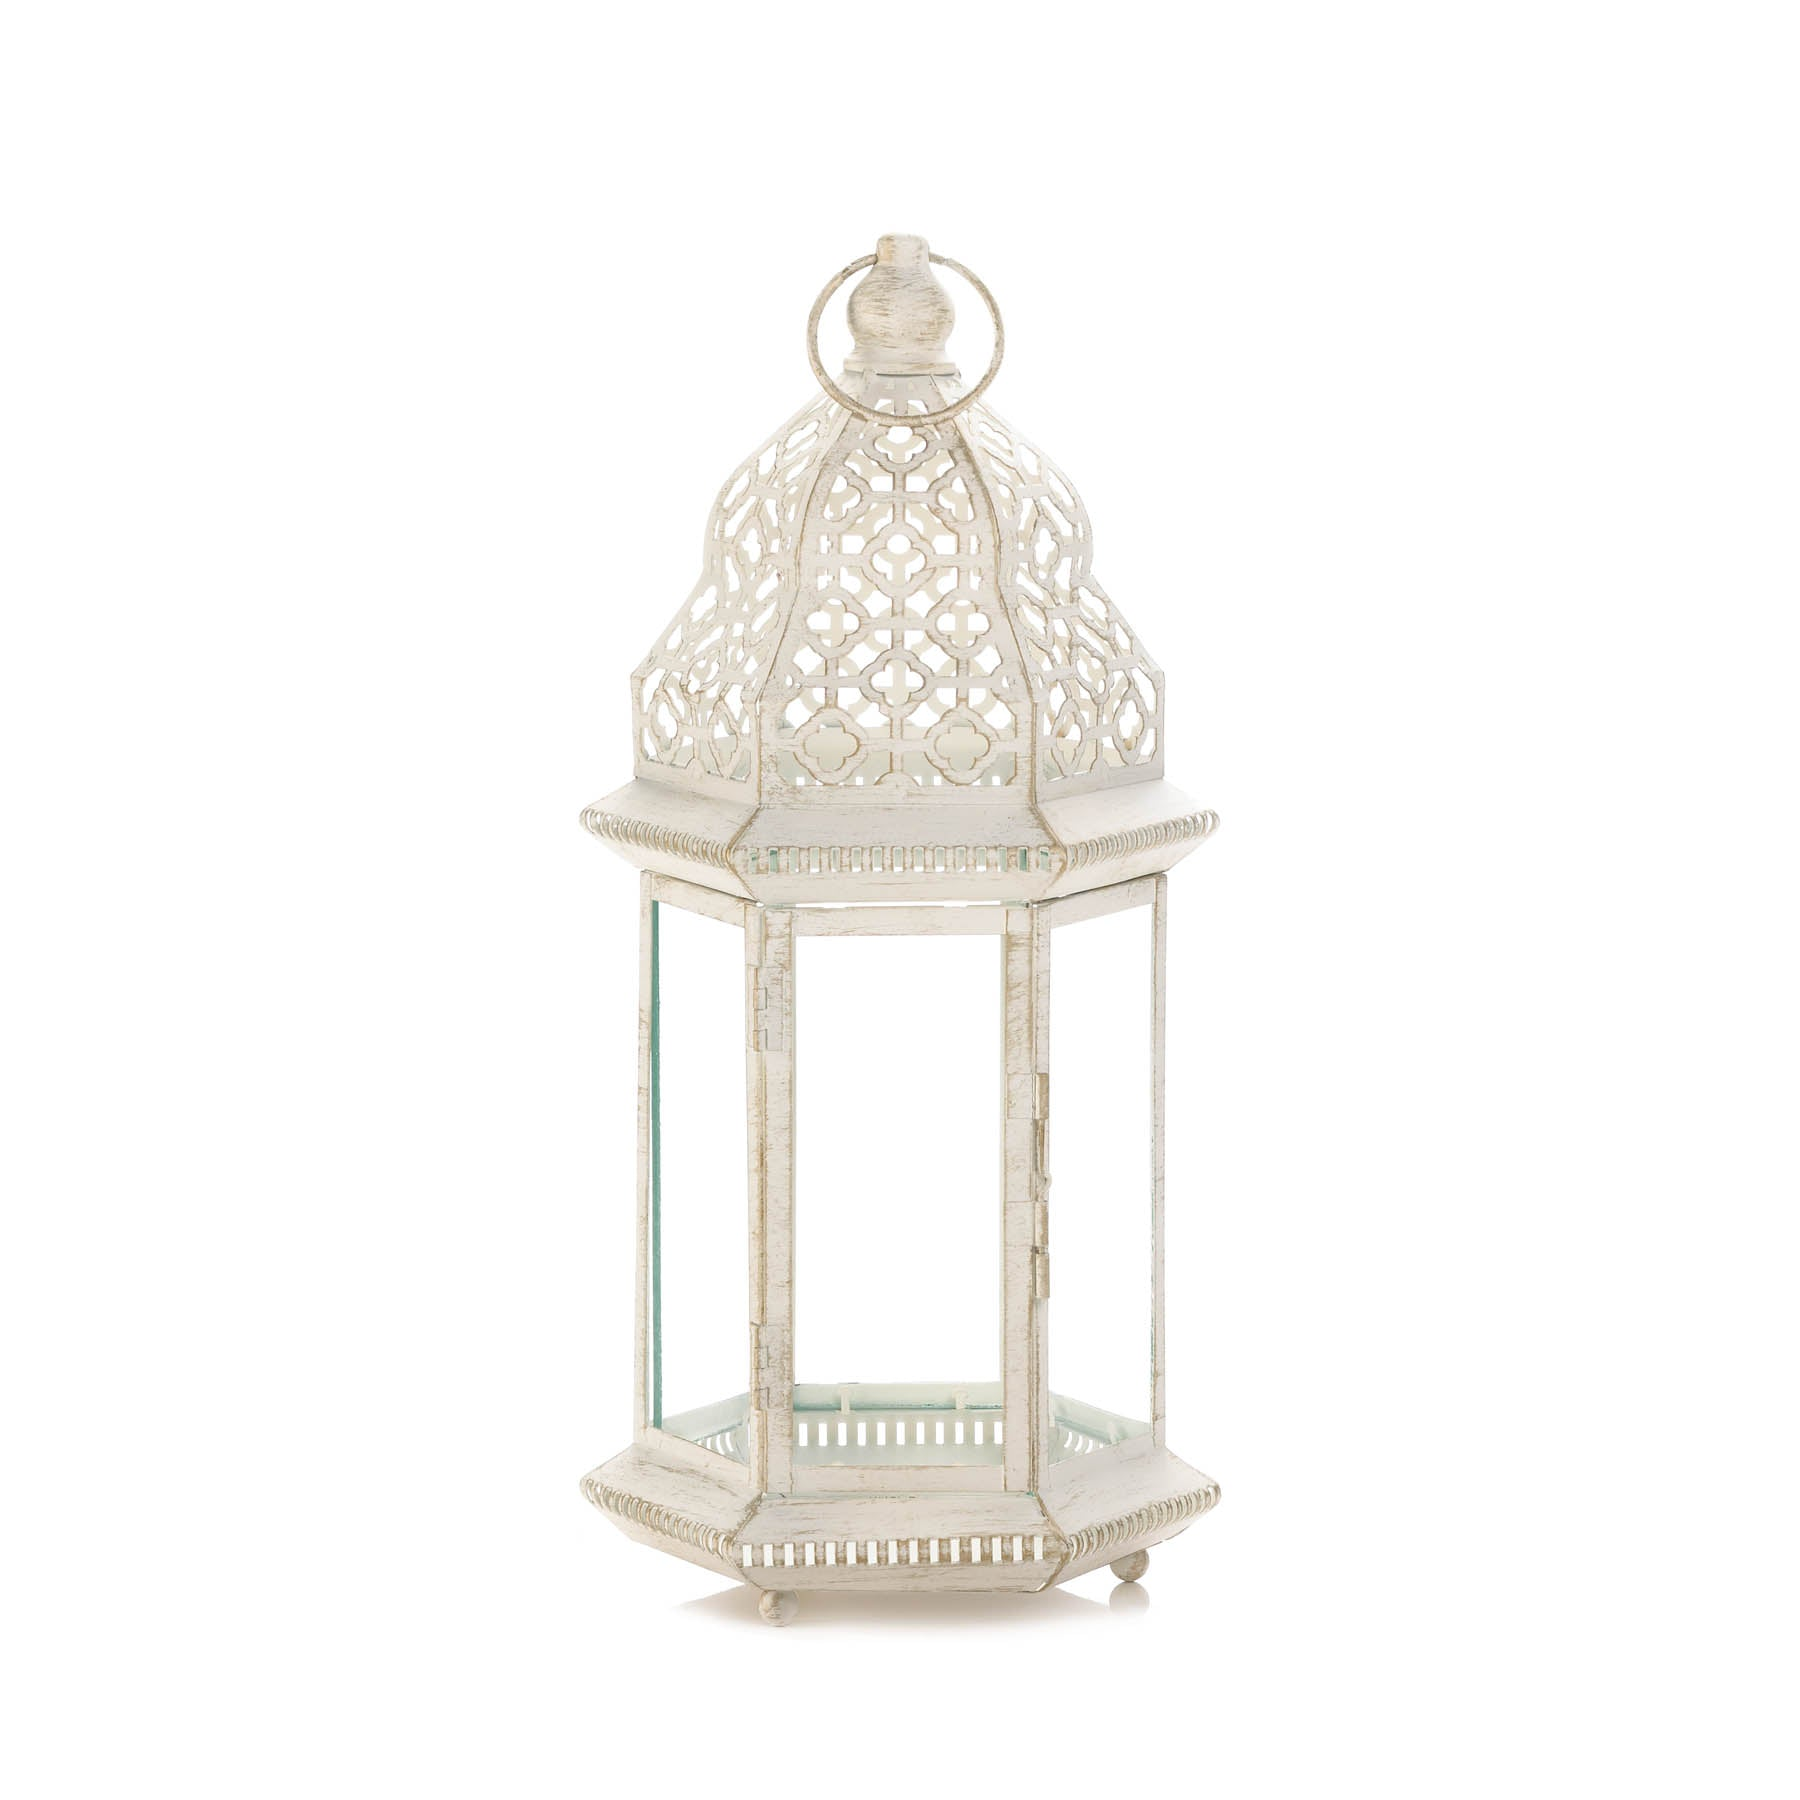 Gallery of Light Sublime Distressed White Large Lantern - 10017452